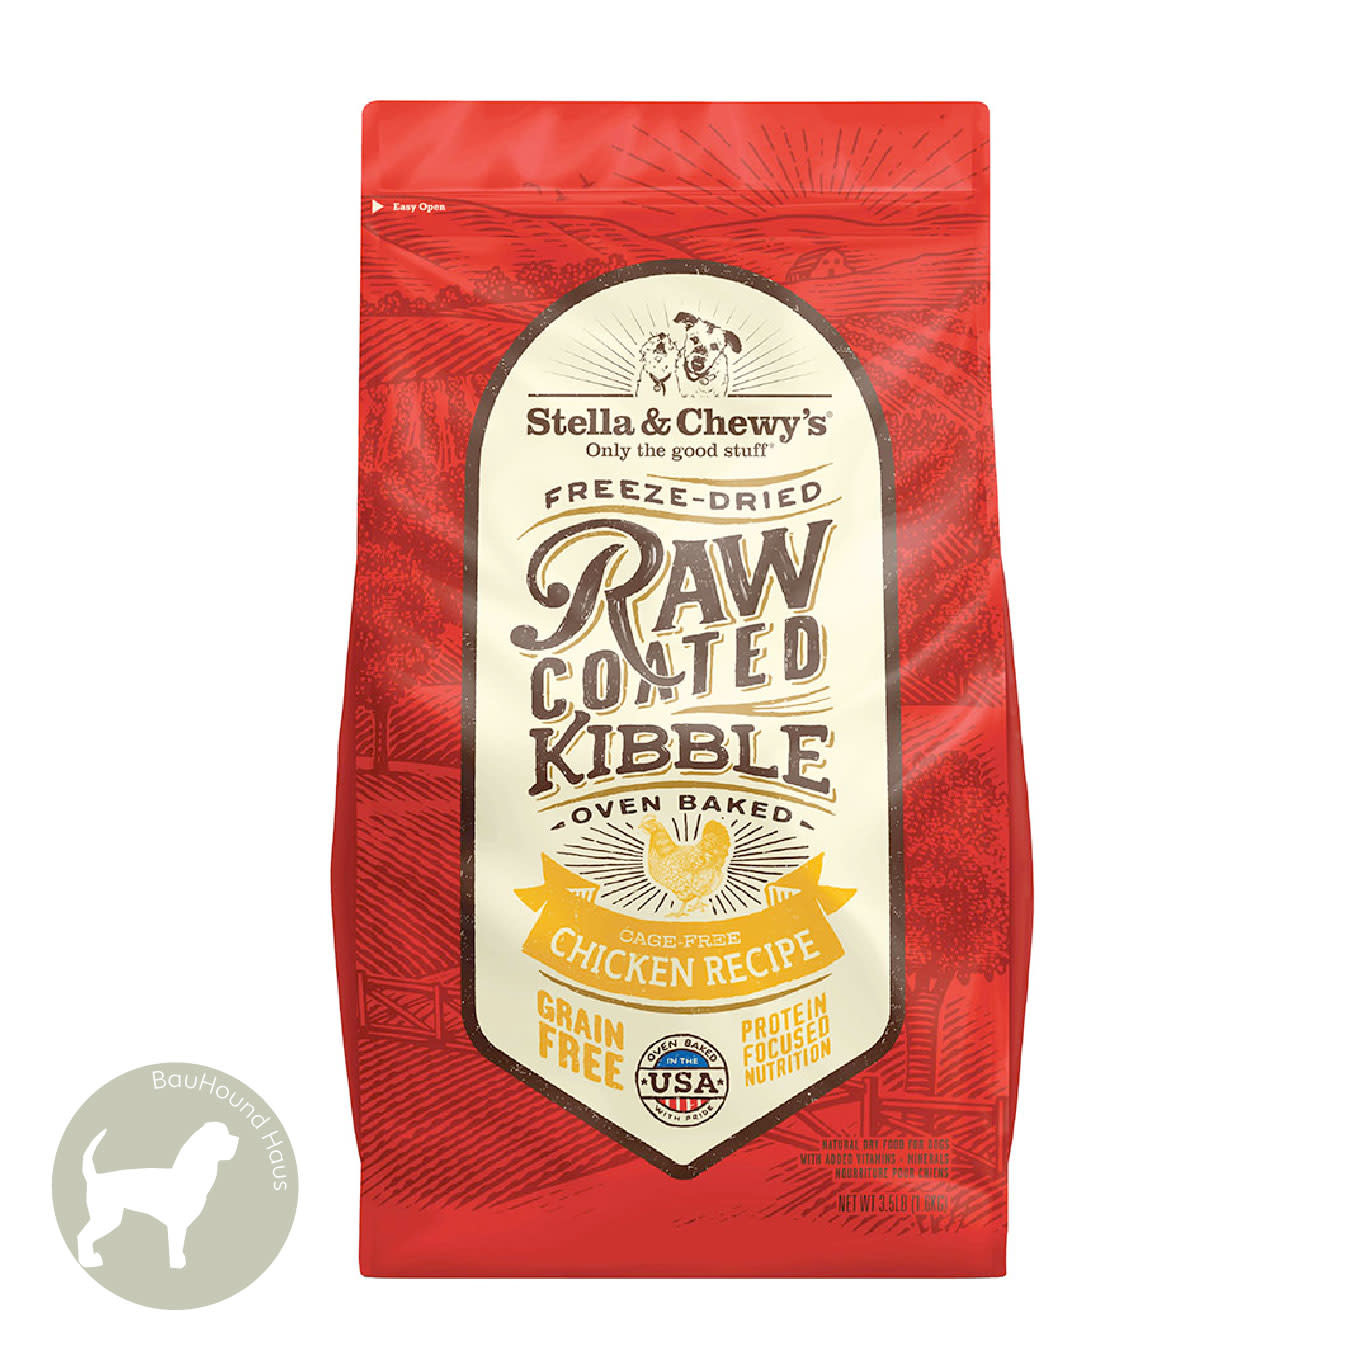 Stella & Chewy's Stella & Chewy's Freeze Dried Raw Coated Kibble Chicken Recipe 22lb